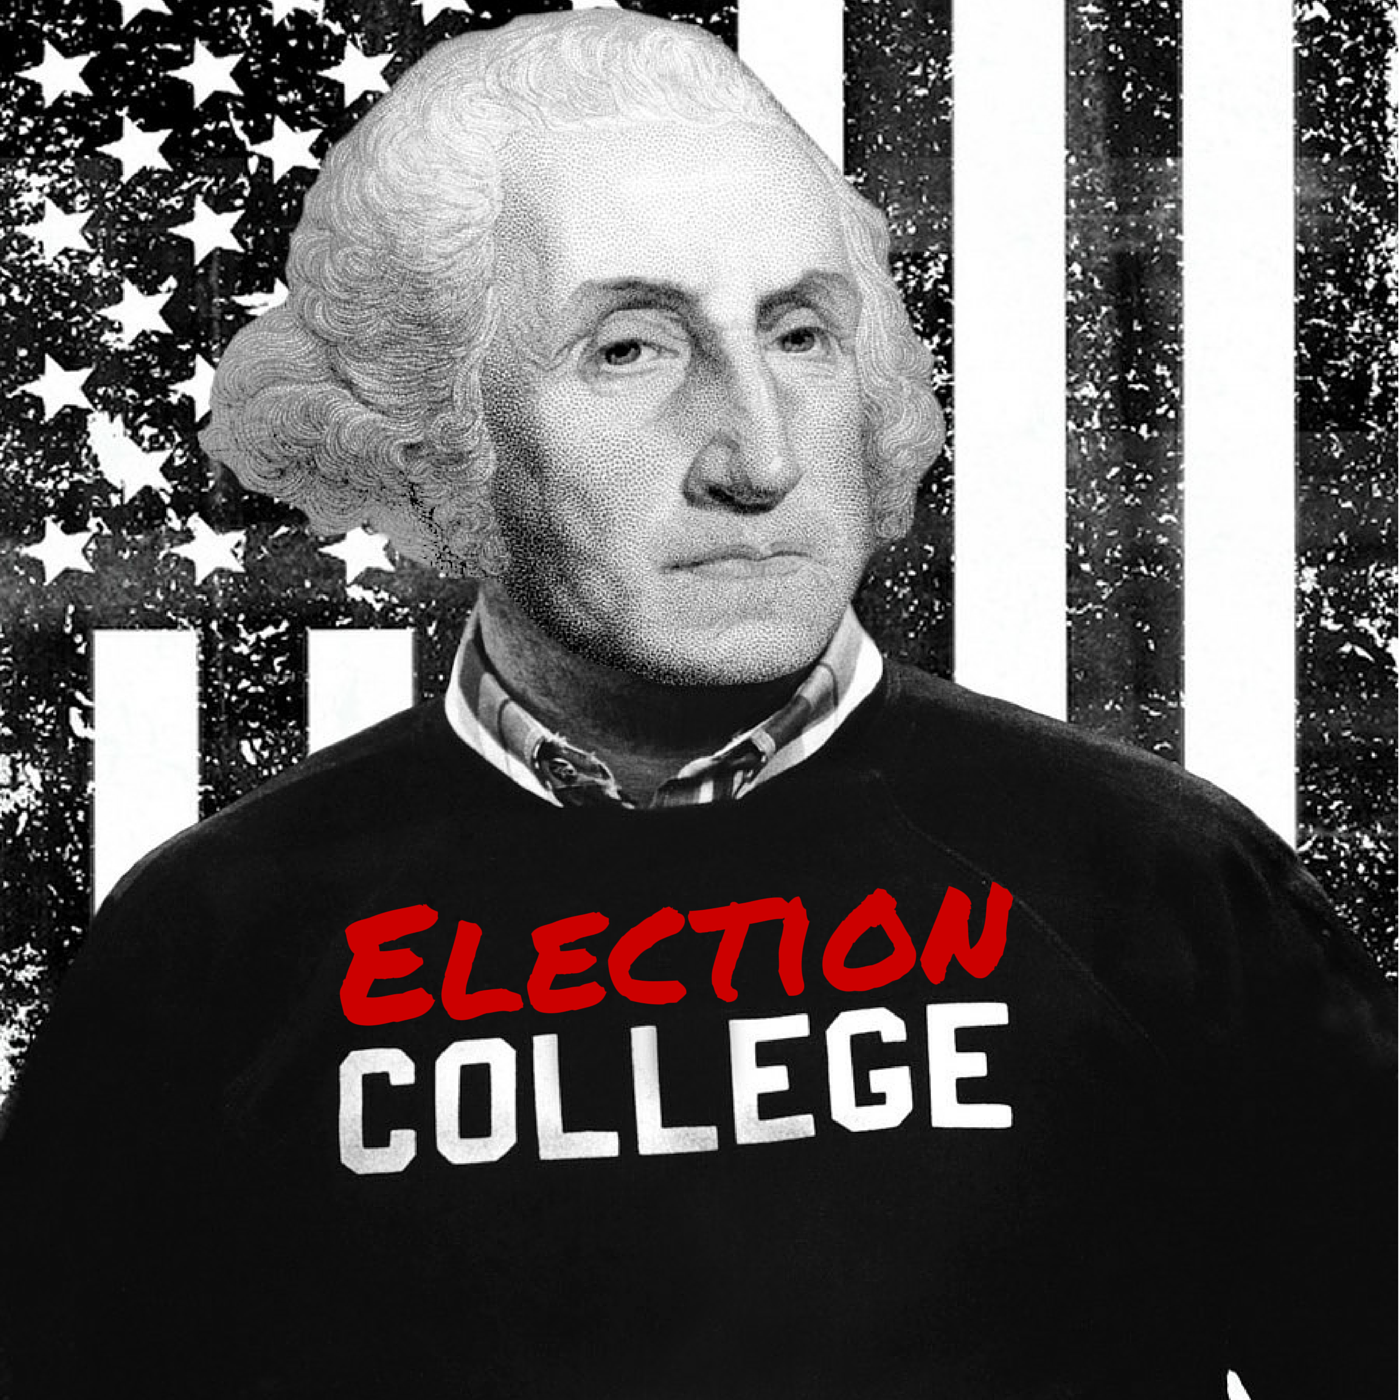 Join our new Facebook Group and be our Election College Cousin!